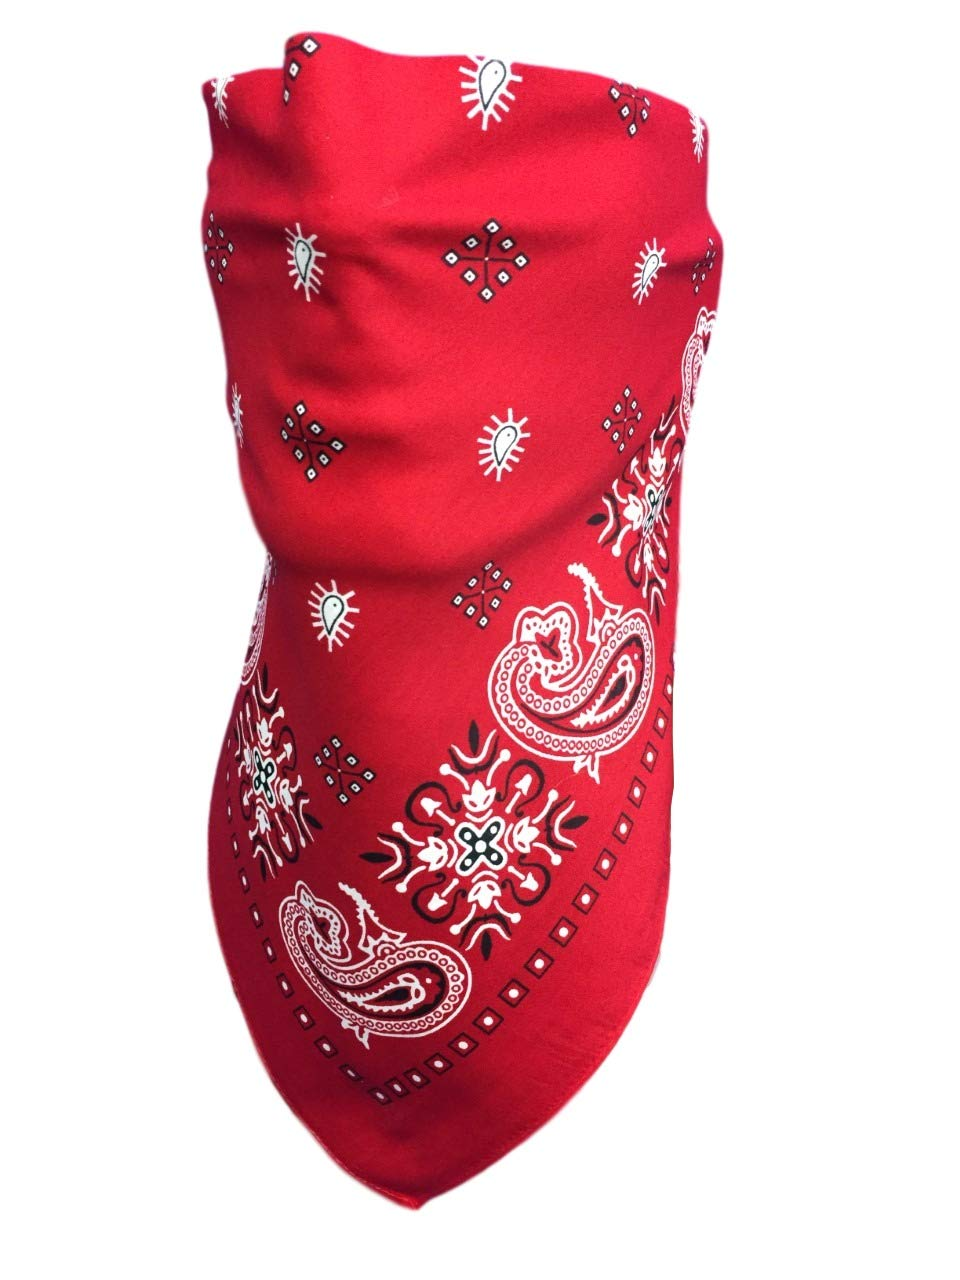 My Skull Store Red Paisley VELCRO®Brand Adjustable Close Bandanna Face Cover Reversible ChopTop, DoRag, Dust, Bug Mask, Sun Protection, Motorcycle Headwrap ATV Rider Hand Made